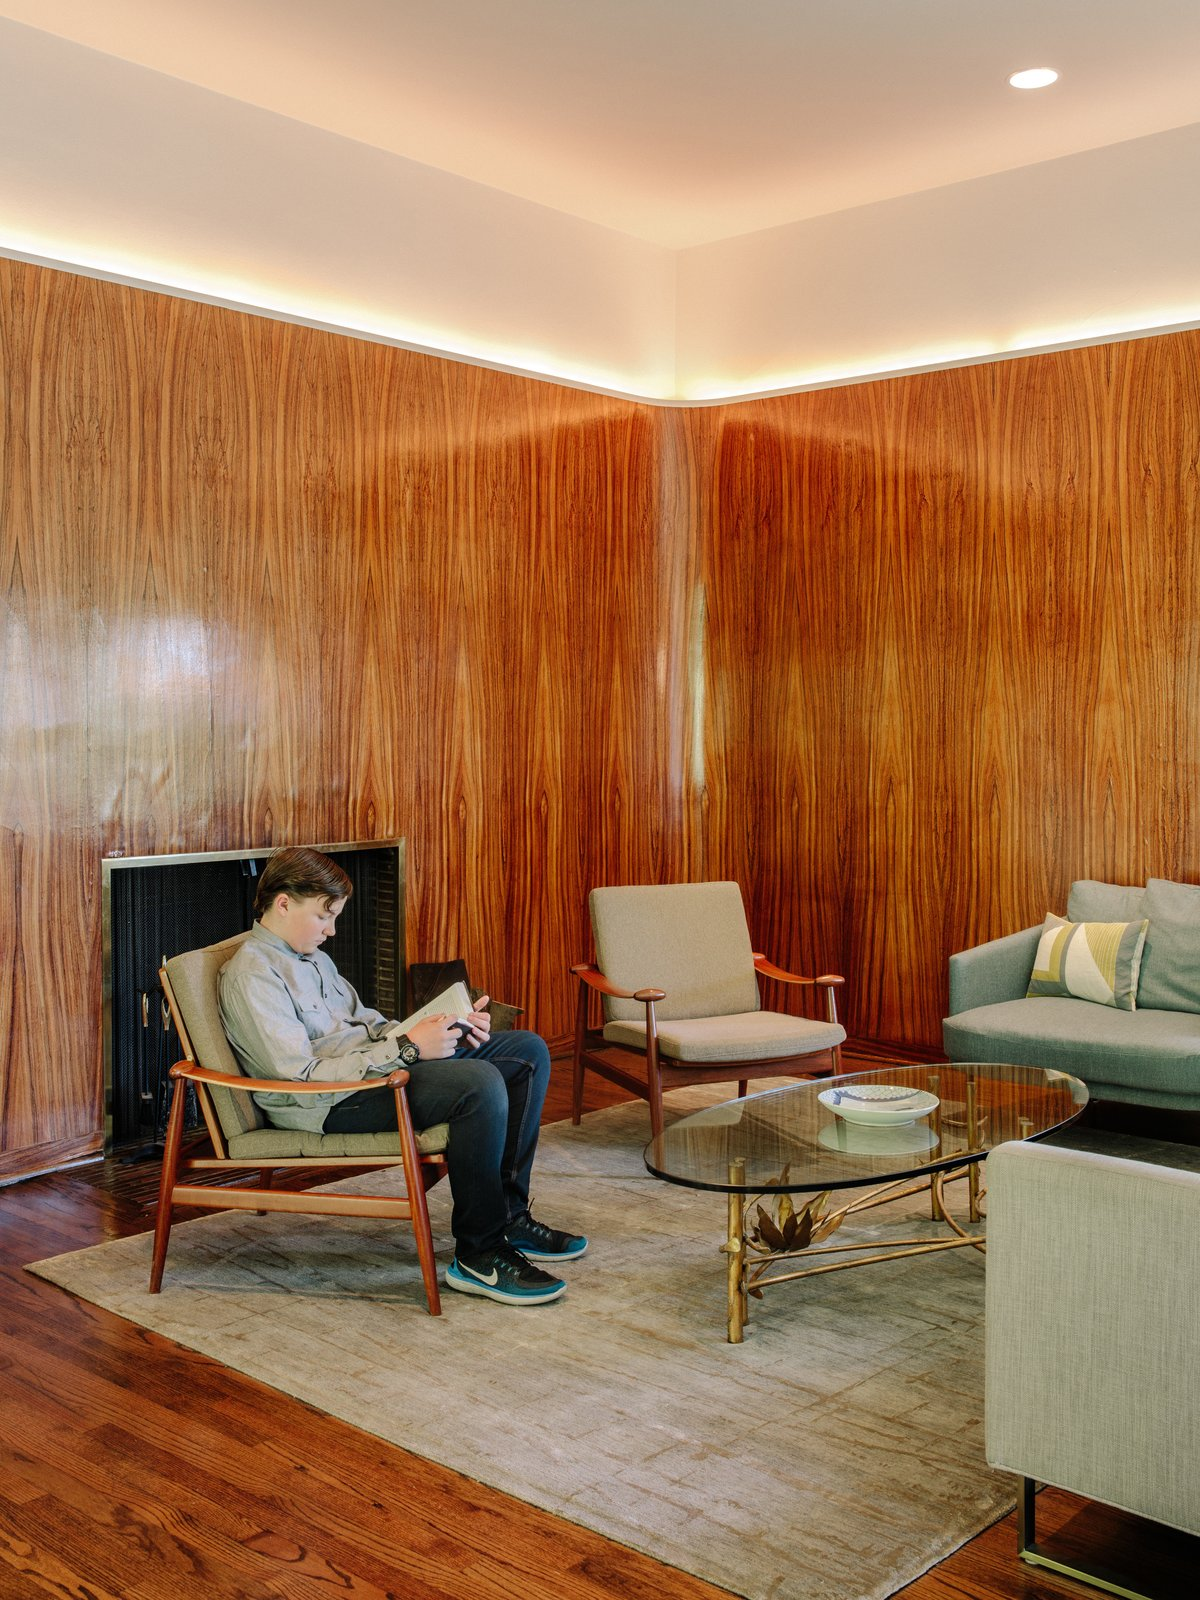 In the hearth, more zebrawood paneling is accented by LED strips. Tagged: Living Room, Medium Hardwood Floor, Recessed Lighting, Rug Floor, Chair, Standard Layout Fireplace, Sofa, and Coffee Tables.  Photo 5 of 15 in Nearly 80 Years Later, an Architect Rescues a Japanese-Inspired  Masterwork Designed by His Father